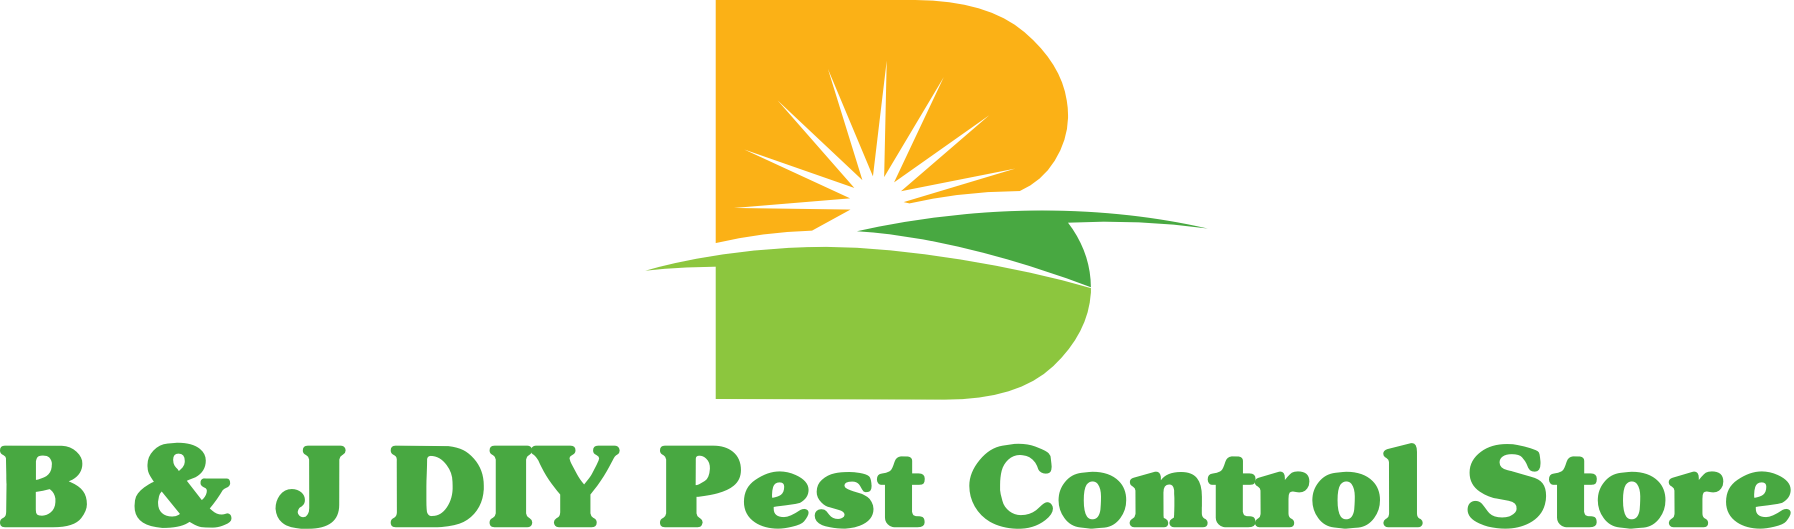 Diy Pest Control Supplies B J Diy Pest Control Store